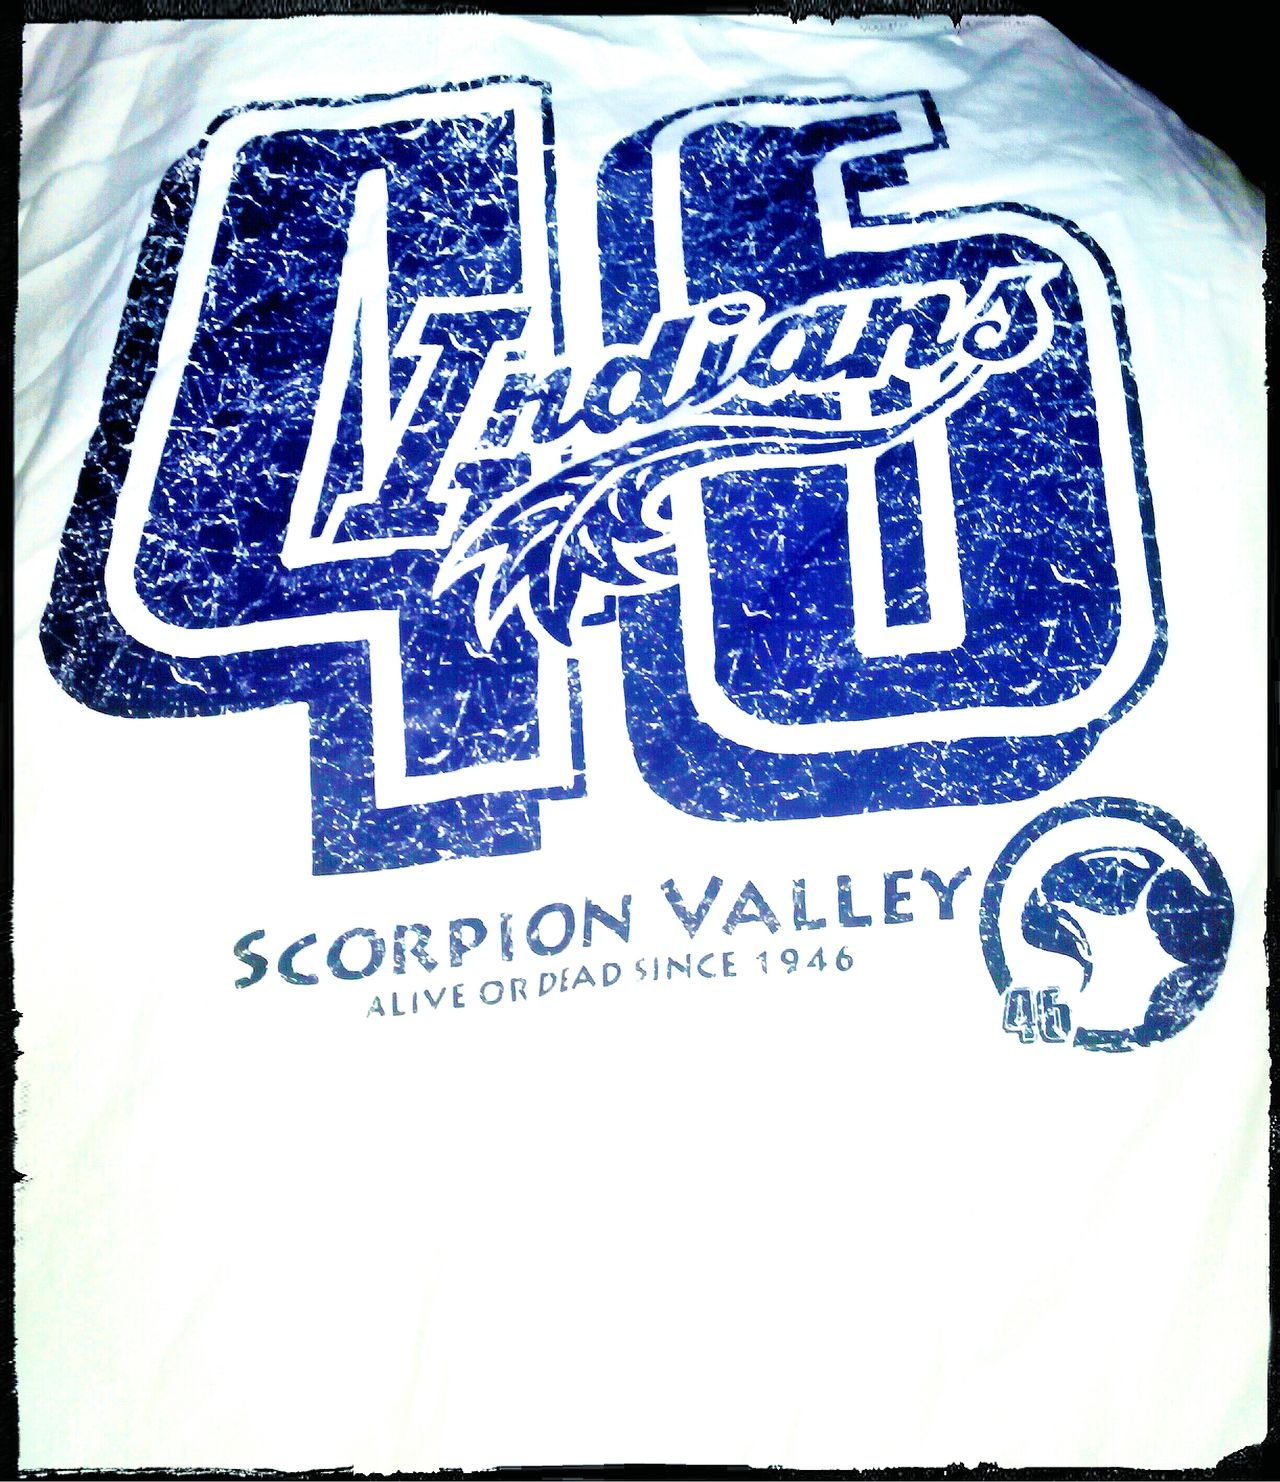 T Shirt Tshirt Alphabetical & Numerical Sport Indians Game Scorpion Valley Indians  Clothes 46 Clothing Tshirts T Shirts Tee Shirt Teeshirts Teeshirt T Shirt Collection White And Blue Tshirtcollection Tshirtporn Tshirt♡ Est.1946 Number 46 AlphaNumeric Blue And White Forty Six